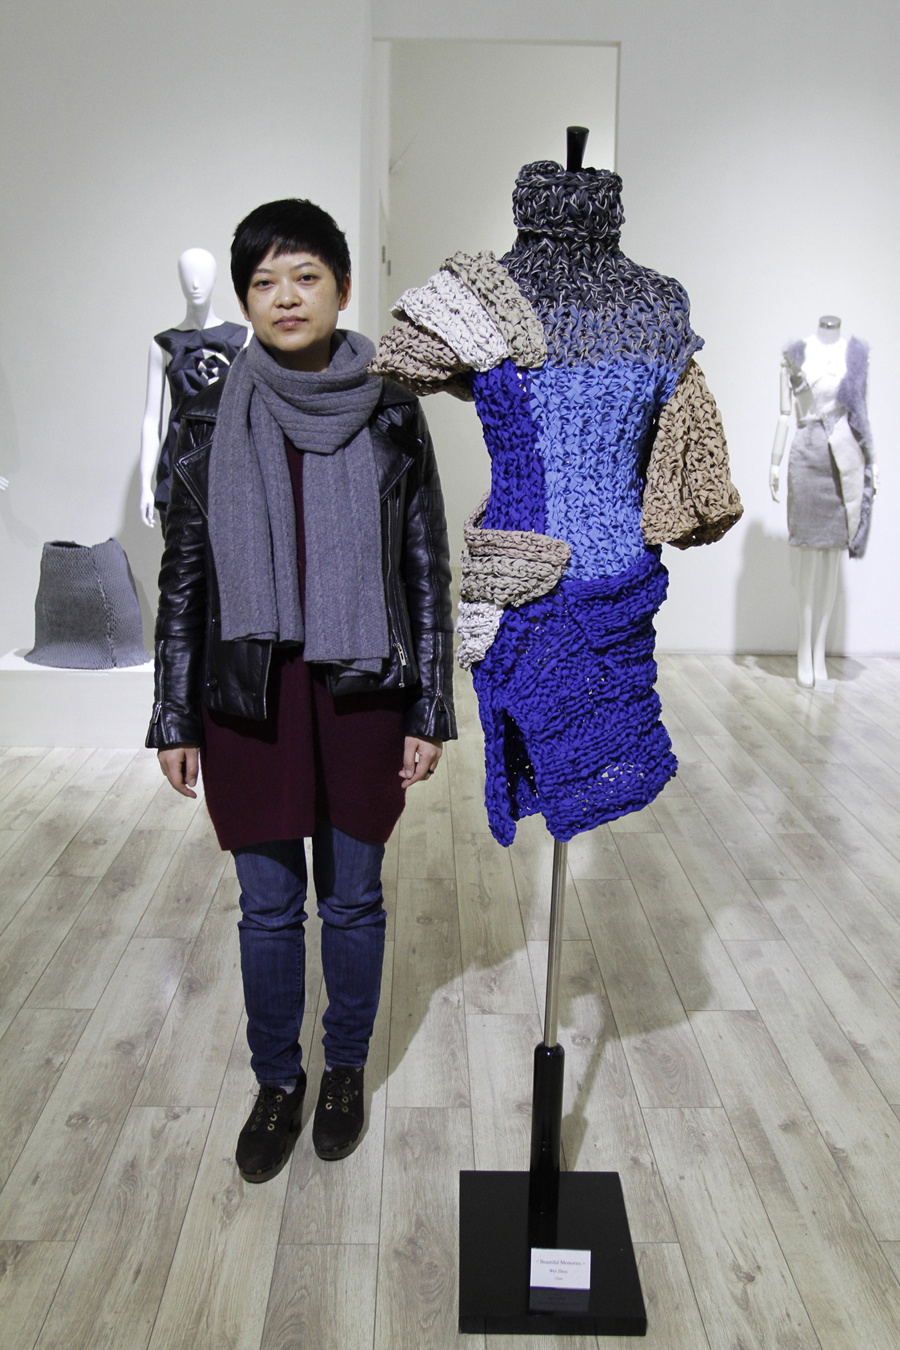 2015 Fashion Art hisheji 01 (13)